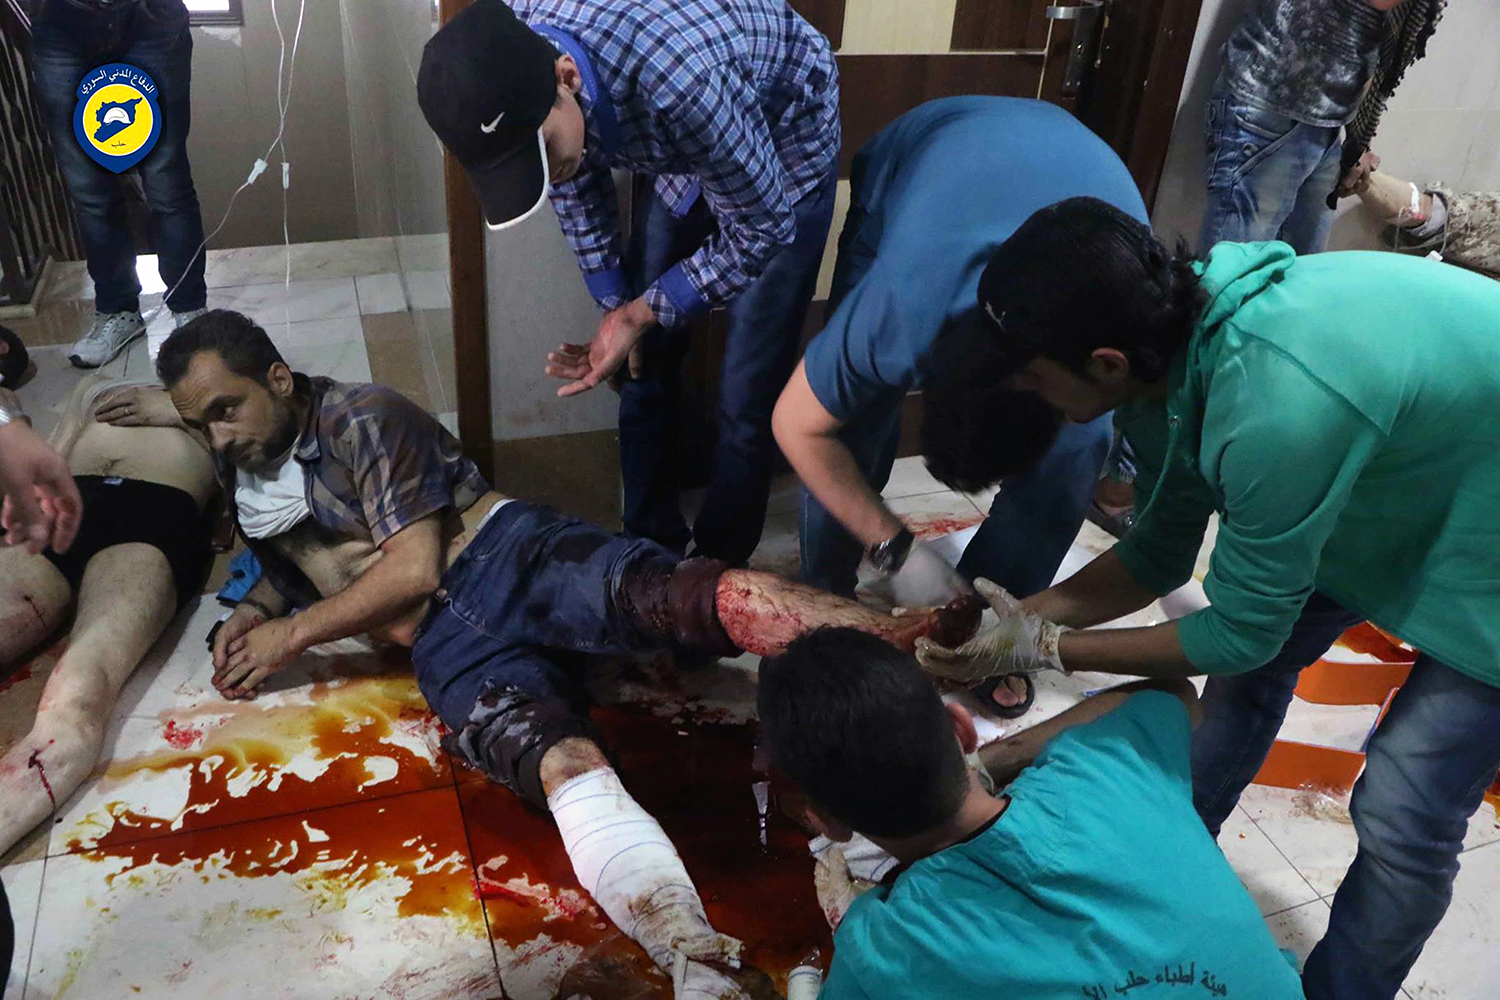 """This photo provided by the Syrian Civil Defense group known as the White Helmets, shows victims of airstrikes receiving treatment on the floor of a clinic, in Aleppo, Syria, Sunday, Sept. 25, 2016. A broad coalition of Syrian rebels denounced international negotiations for peace as """"meaningless"""" on Sunday, as the U.N. Security Council prepared to convene an emergency meeting about the spiraling violence in Syria. (Syrian Civil Defense White Helmets via AP)"""